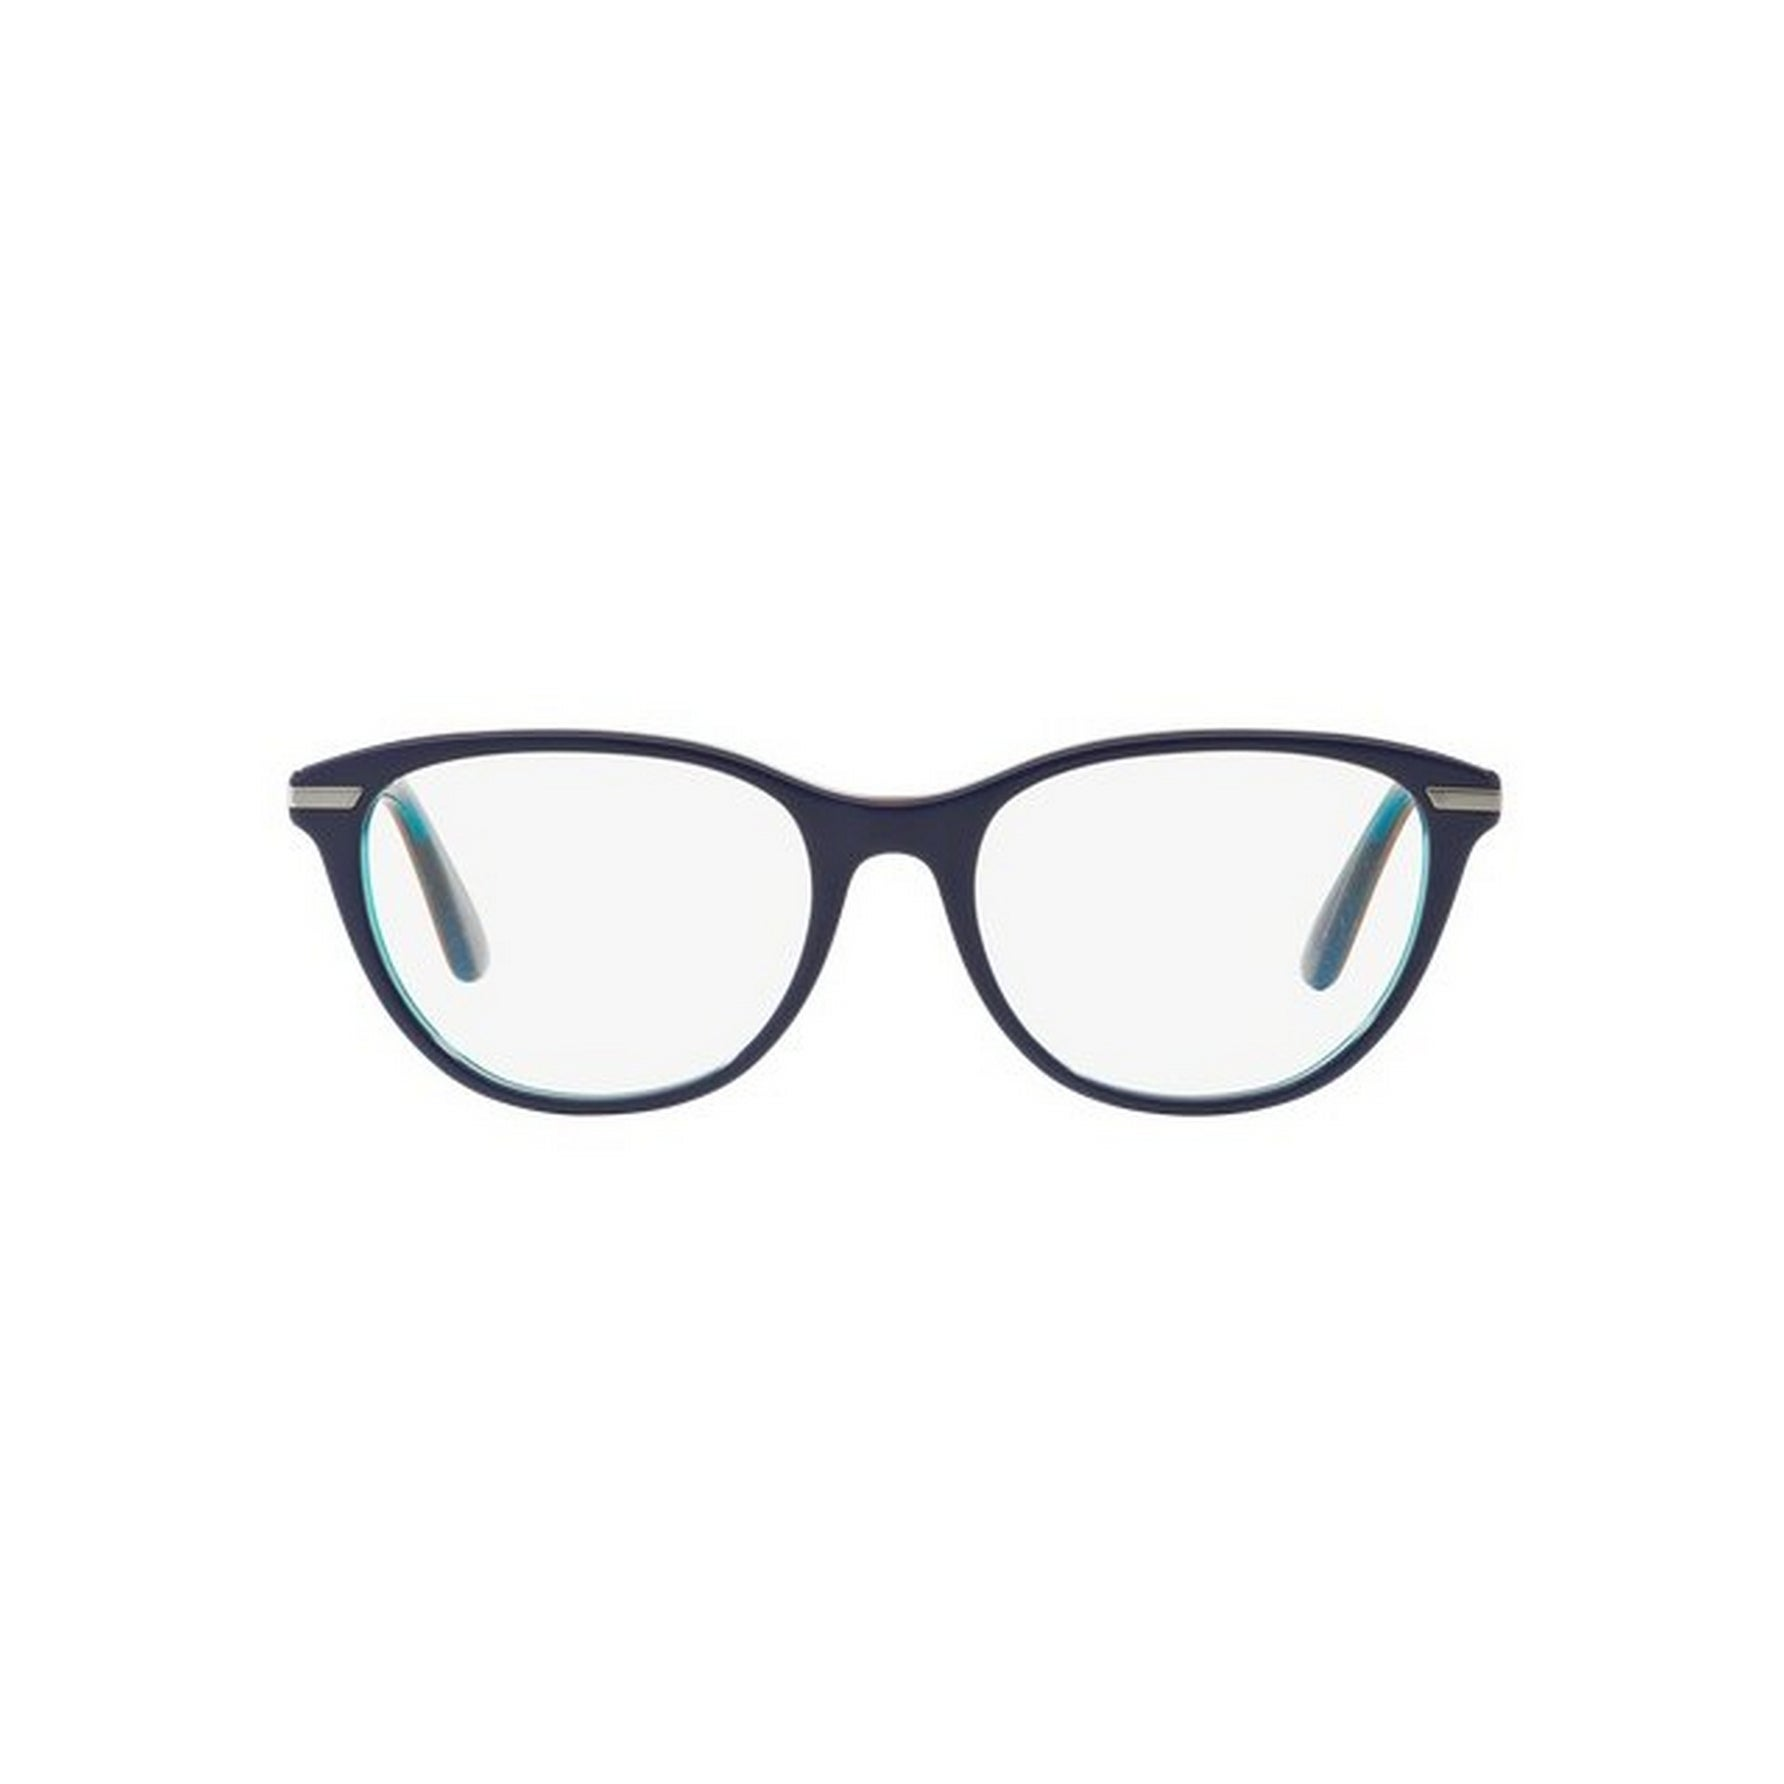 3259a4eba40 Shop Vogue Women s VO2937 2278 51 Oval Plastic Blue Clear Eyeglasses - Free  Shipping Today - Overstock.com - 14778970